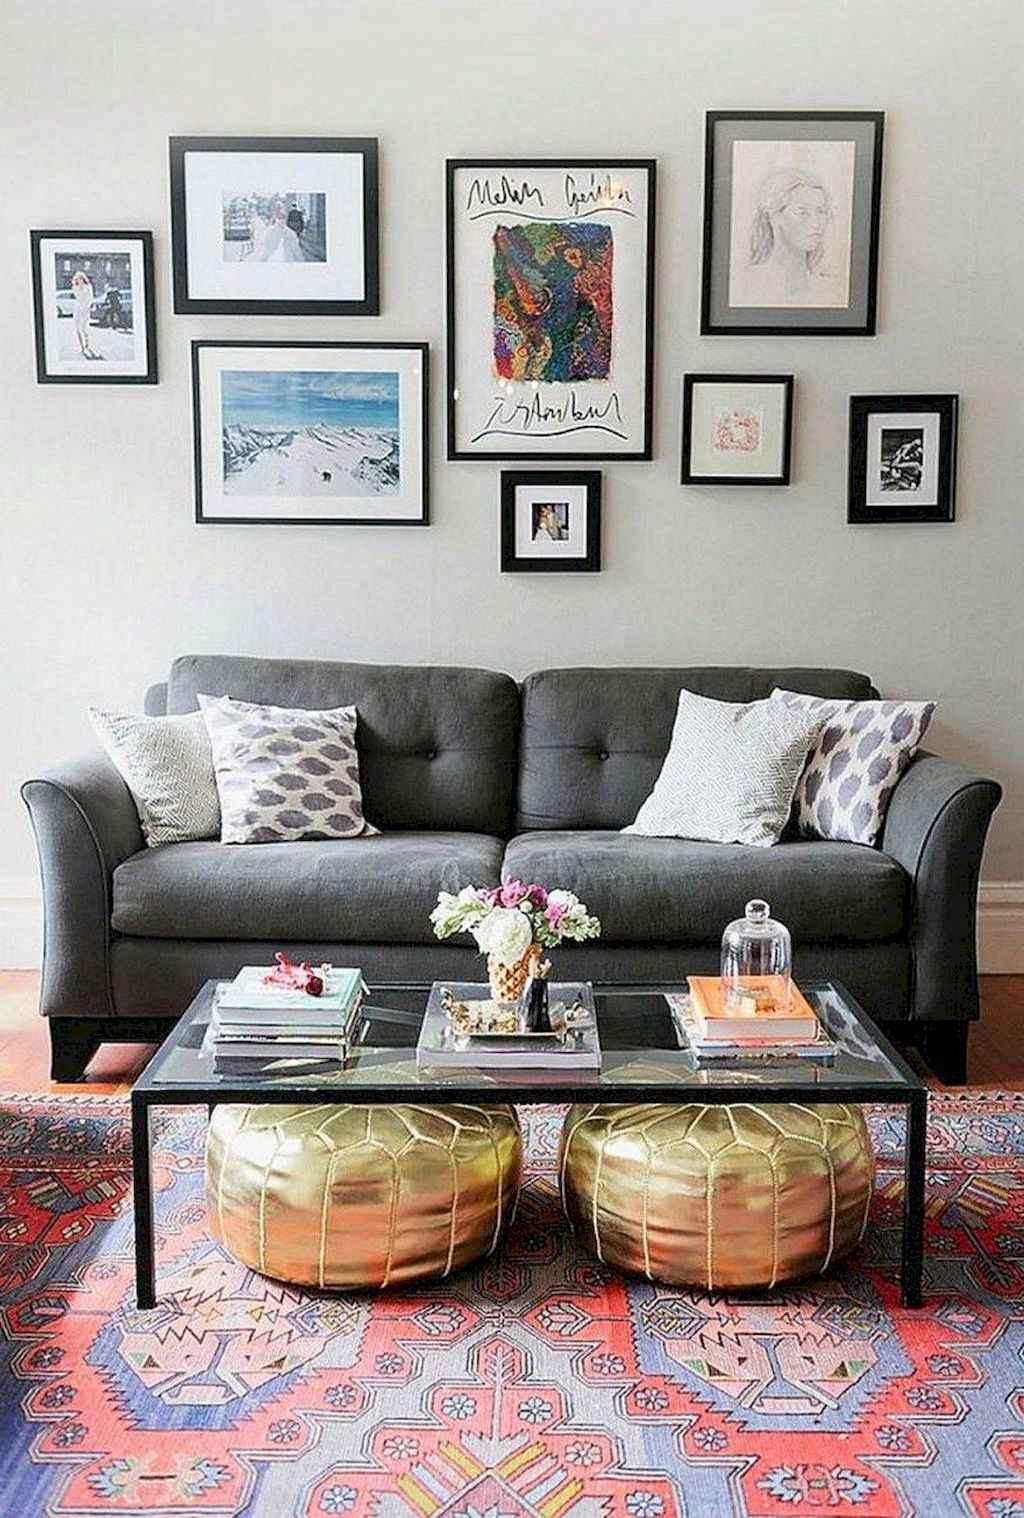 Amazing small first apartment decorating ideas (32) - HomeSpecially